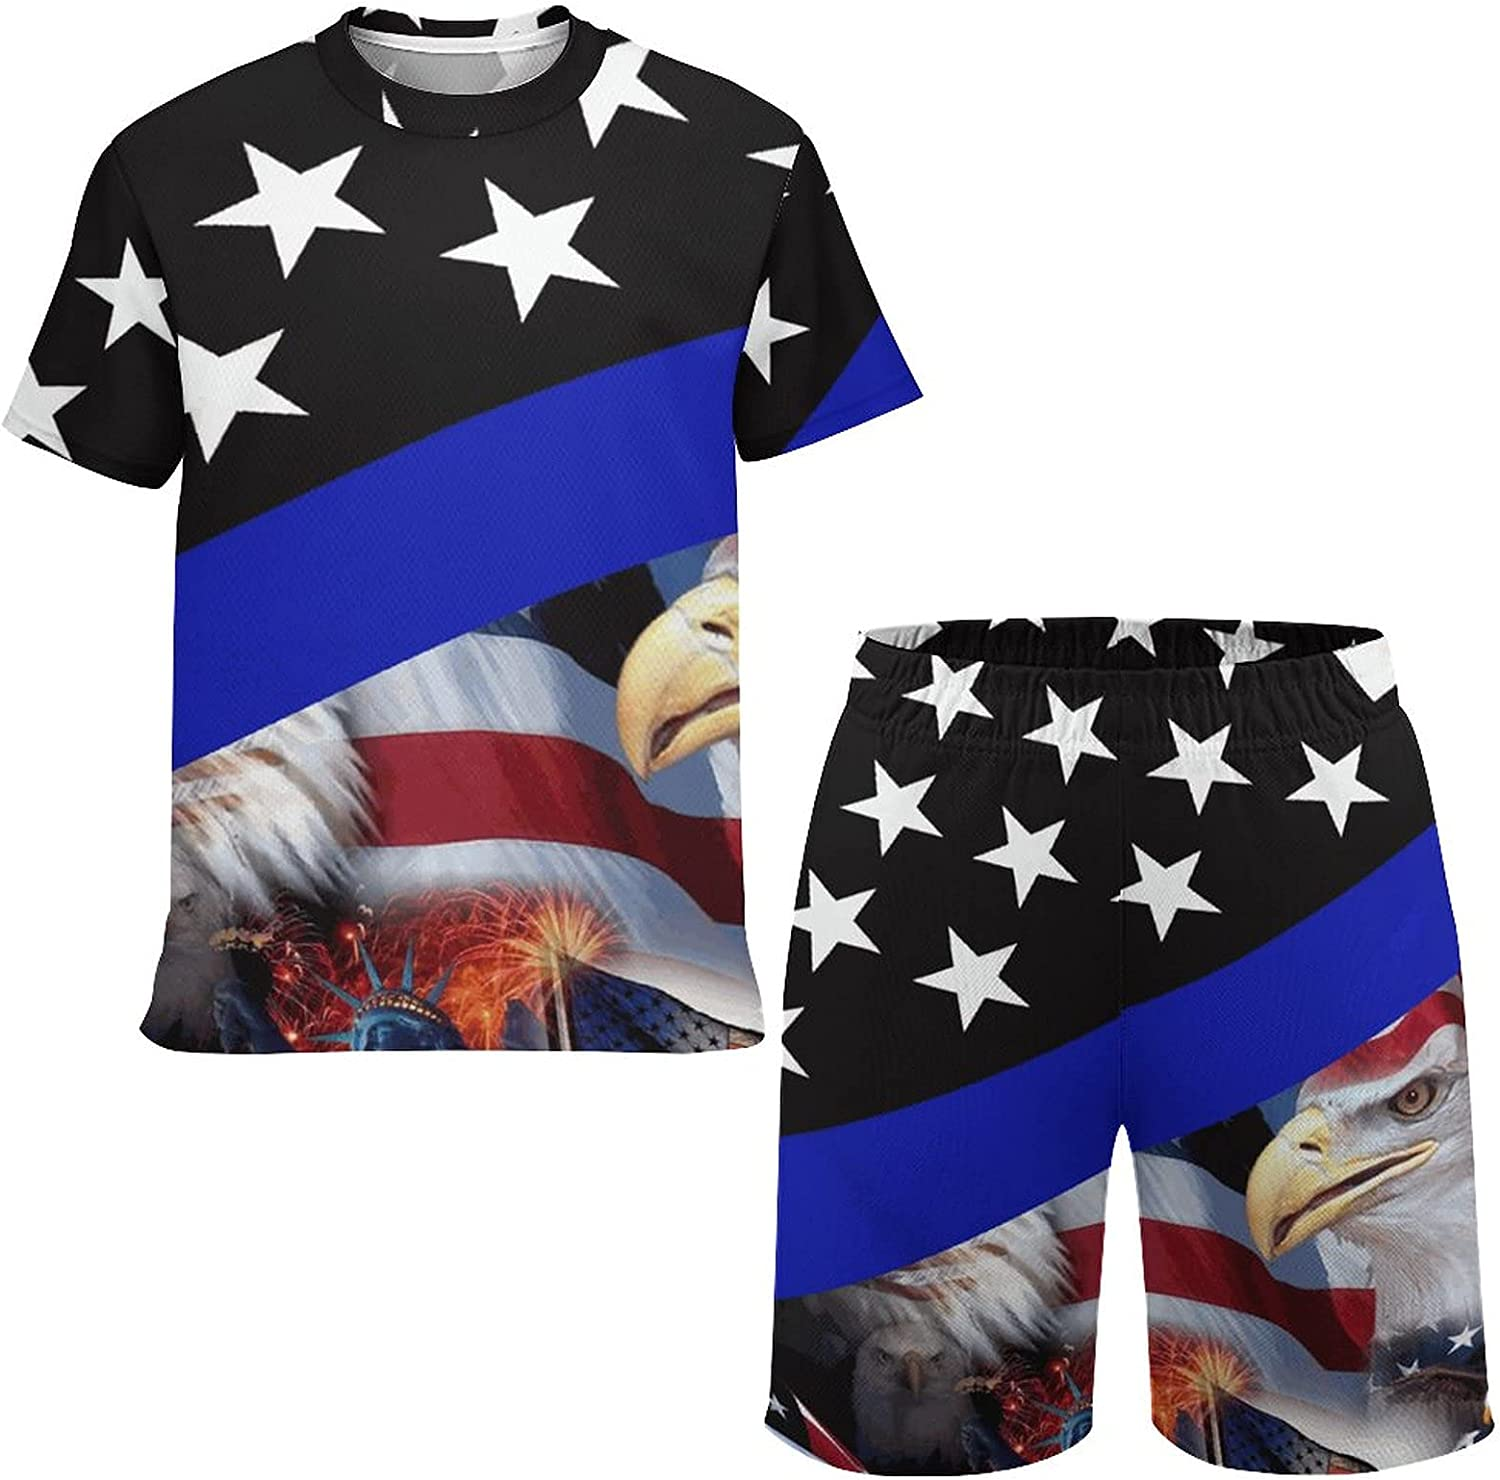 Boys and Teens Short Sleeve T-Shirt and Shorts with Mesh Liner, Thin Blue Line American Flag And Bald Eagle Soft Crewneck T-Shirts Outfit Set, Funny Summer Personality Tee Tops and Shorts , Small